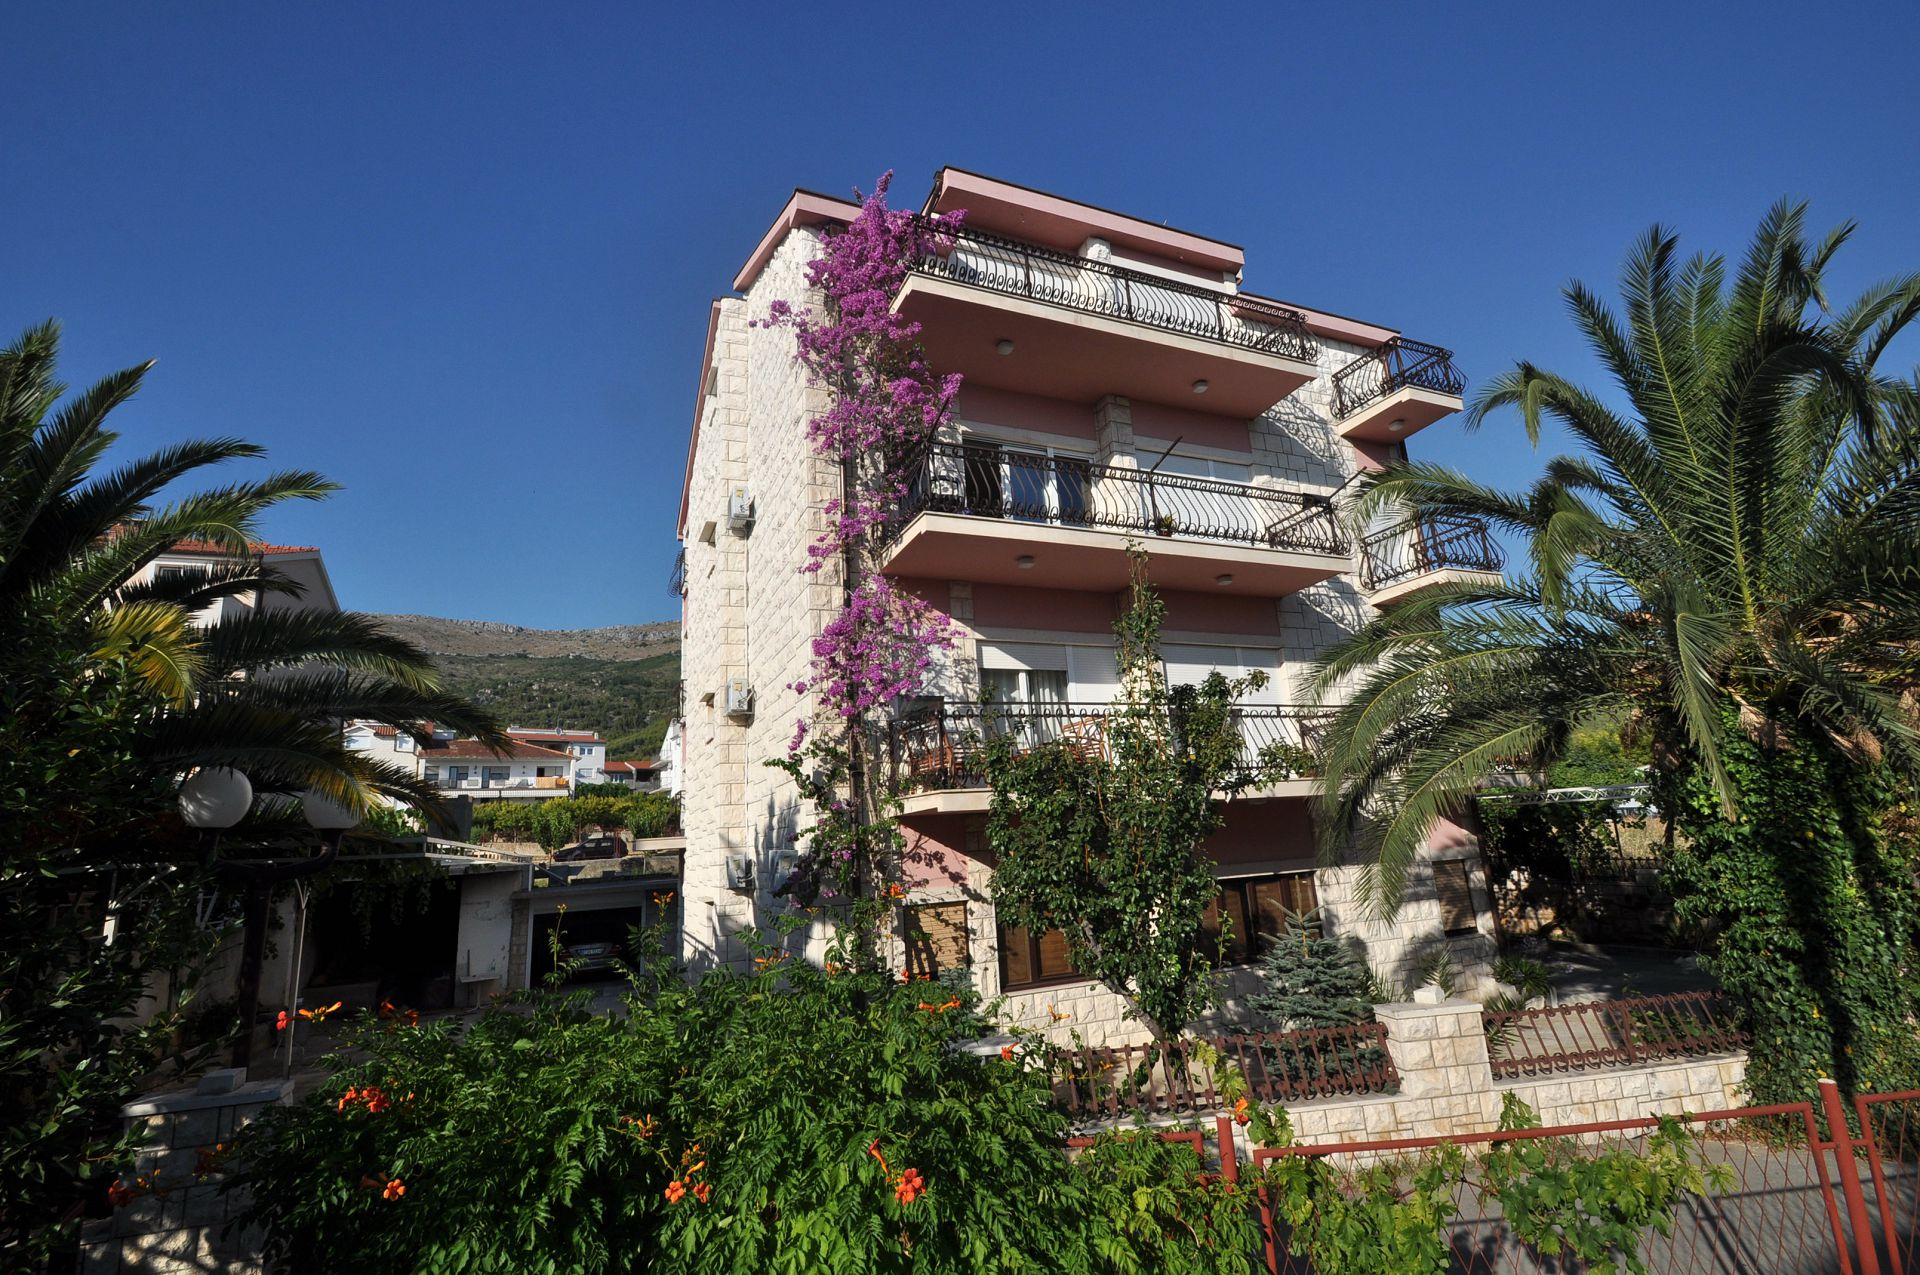 8219 - Podstrana - Apartments Croatia